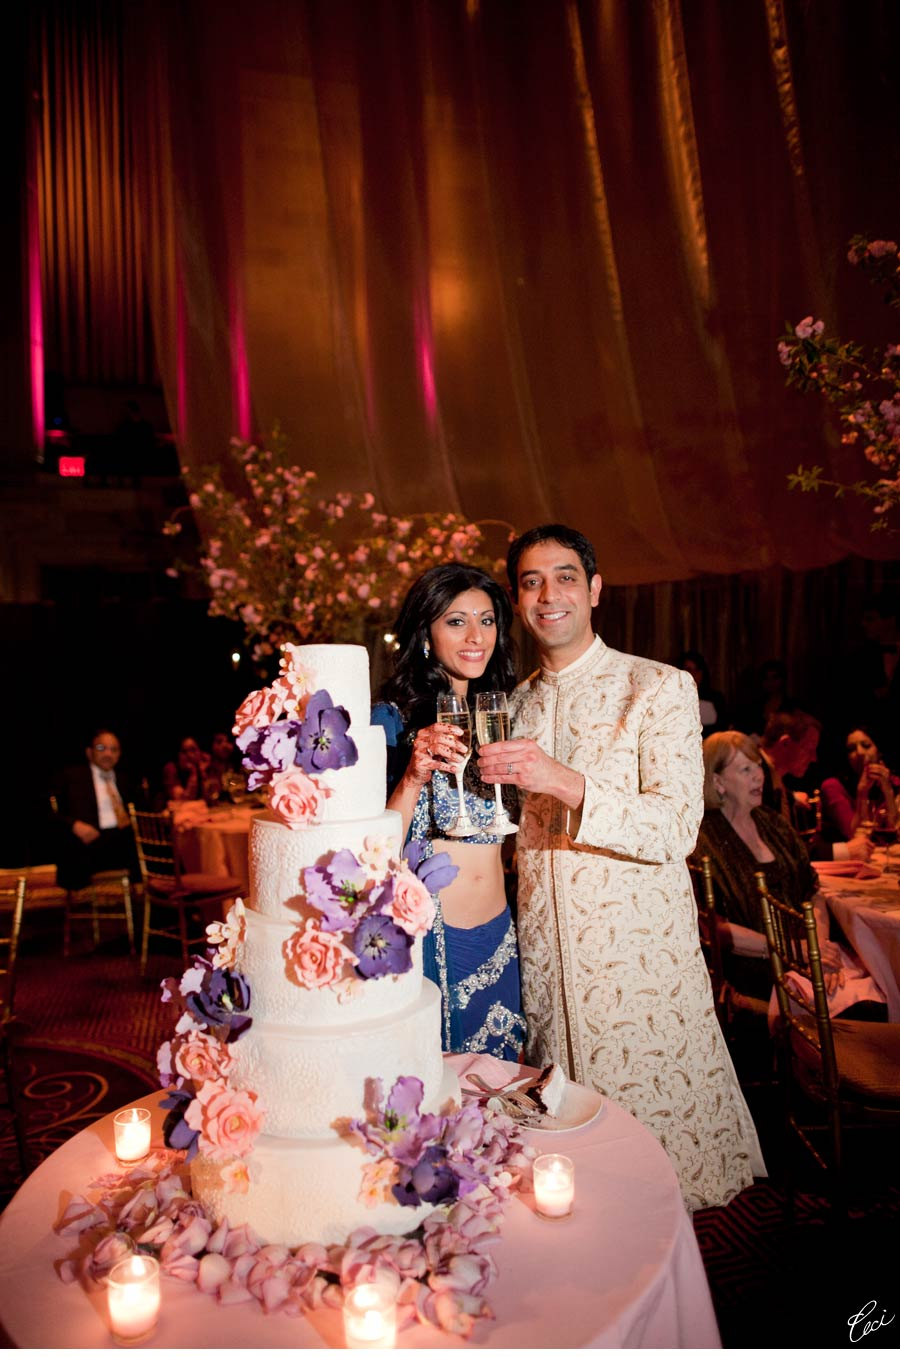 Wedding Photos - Be inspired by Reshma Shetty & Deep's Indian wedding